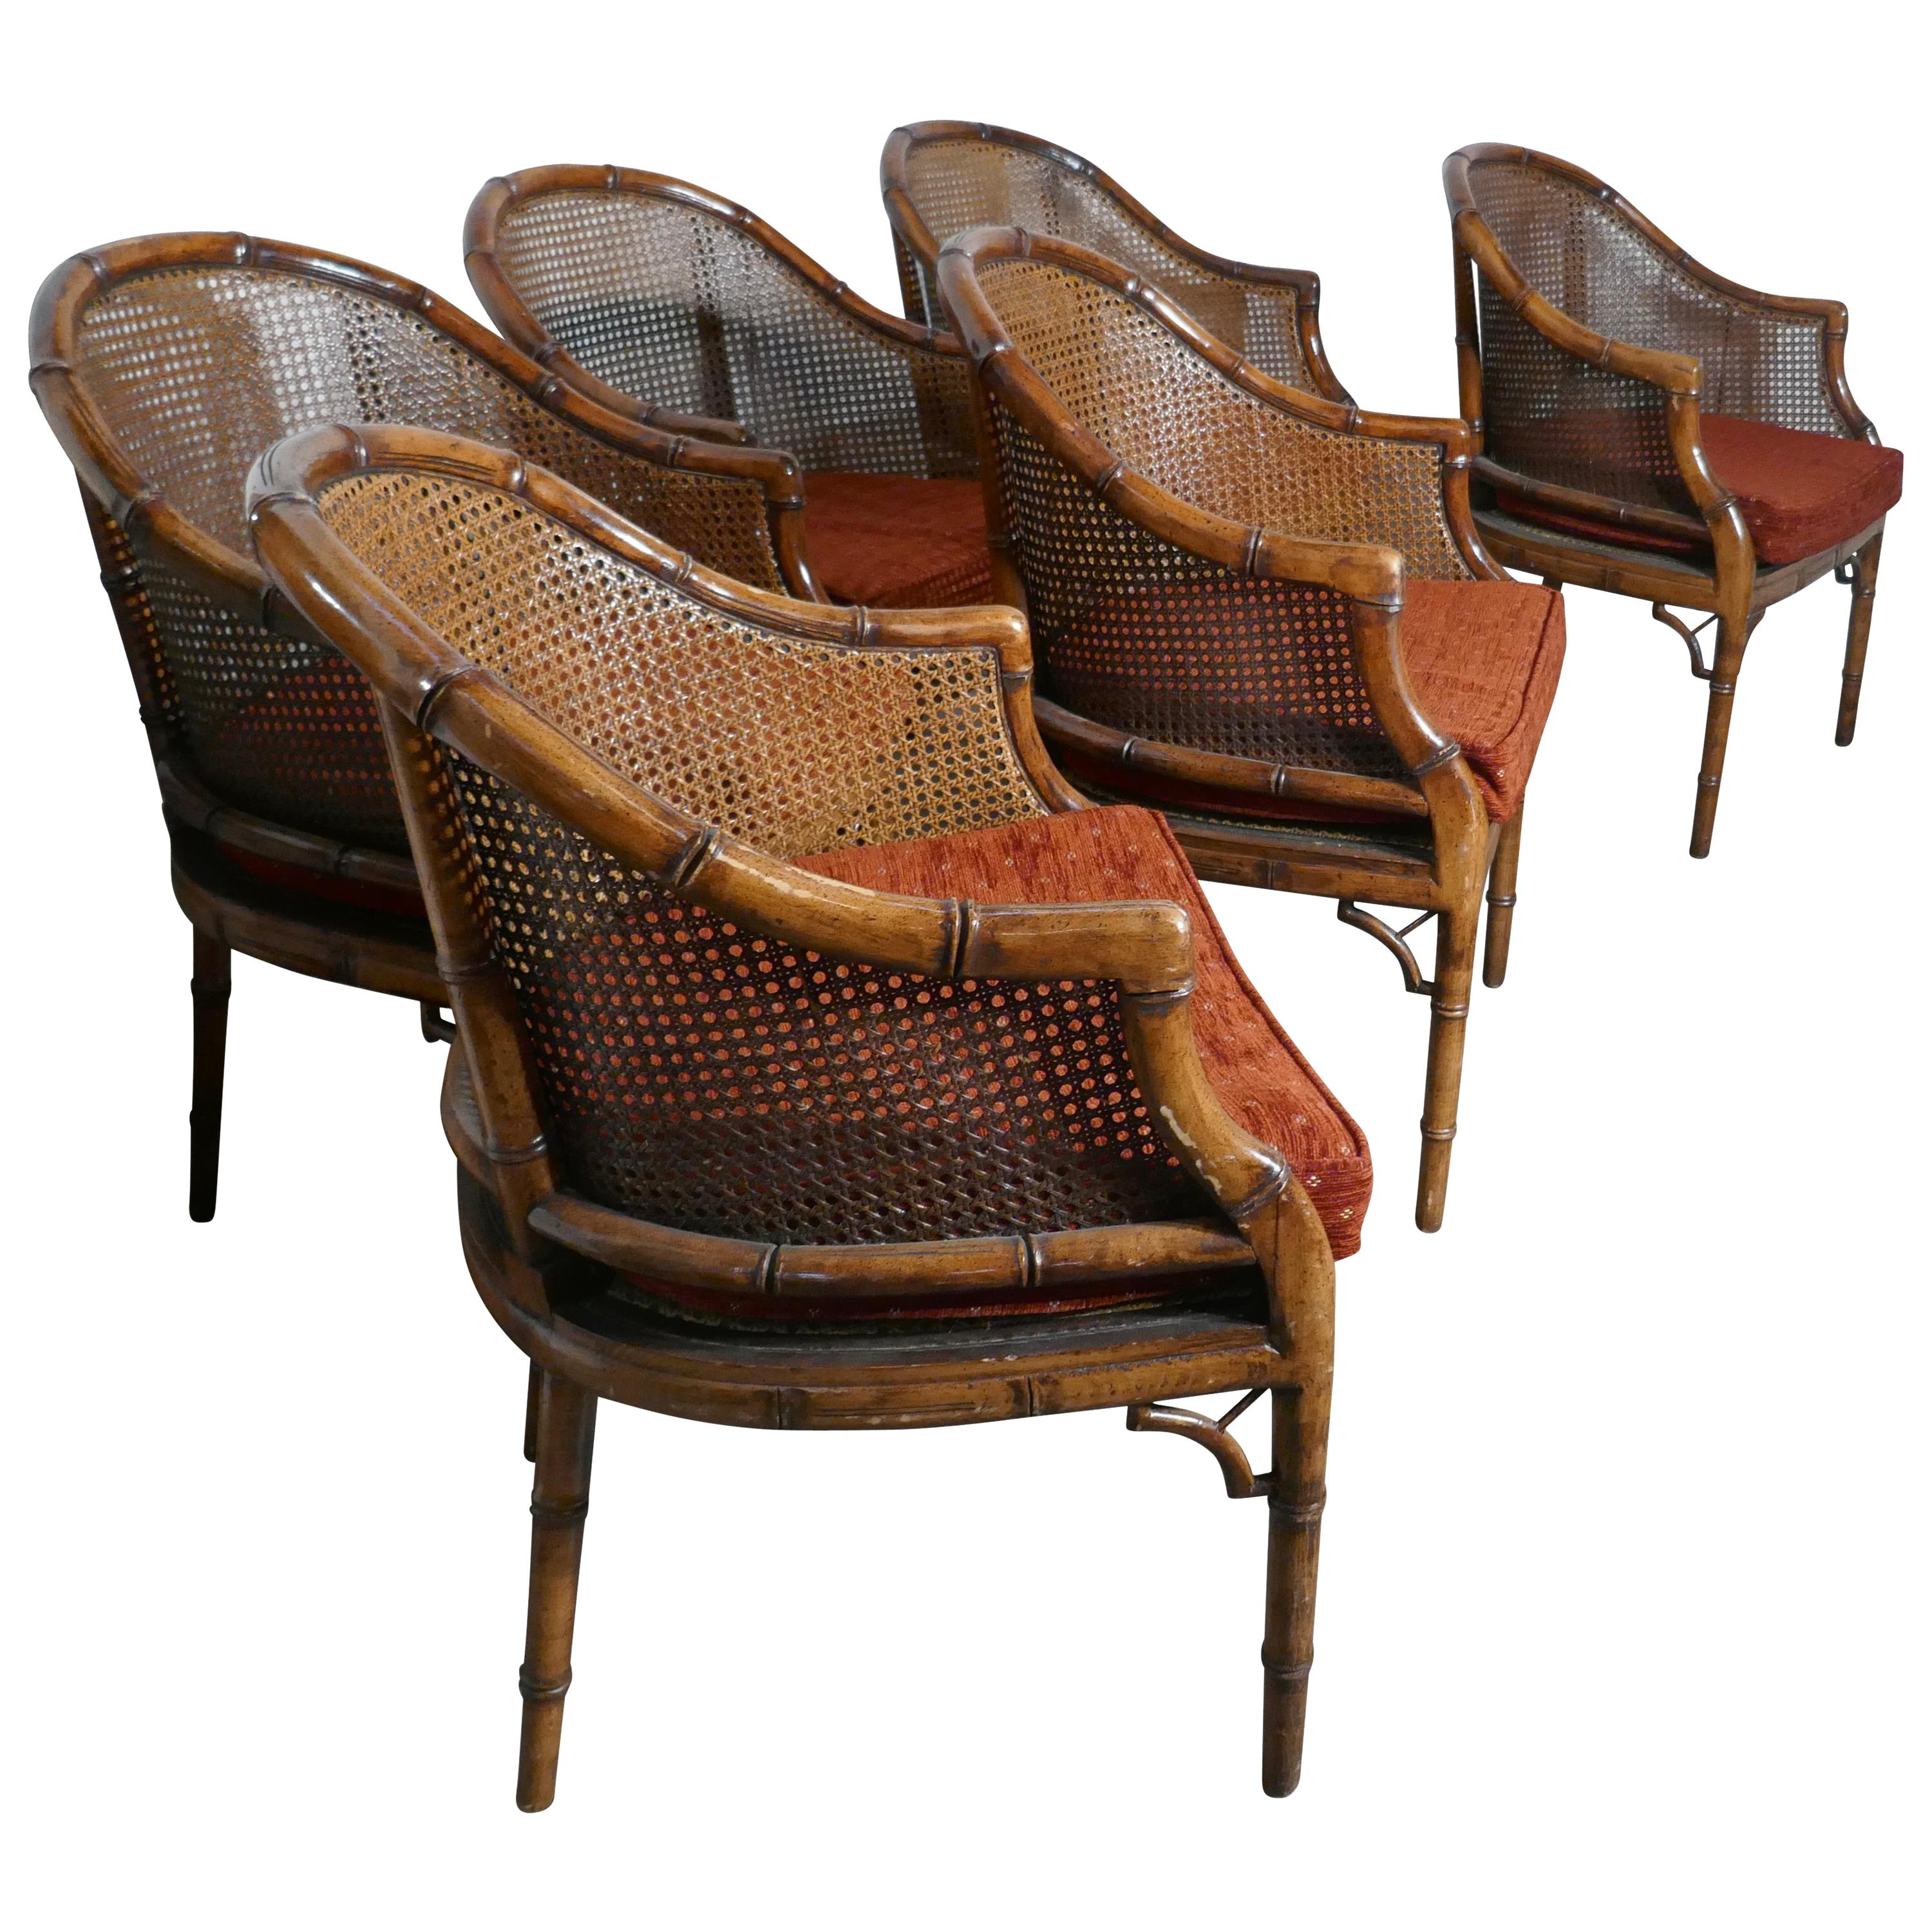 Pleasant 19Th Century Lounge Chairs 190 For Sale At 1Stdibs Cjindustries Chair Design For Home Cjindustriesco